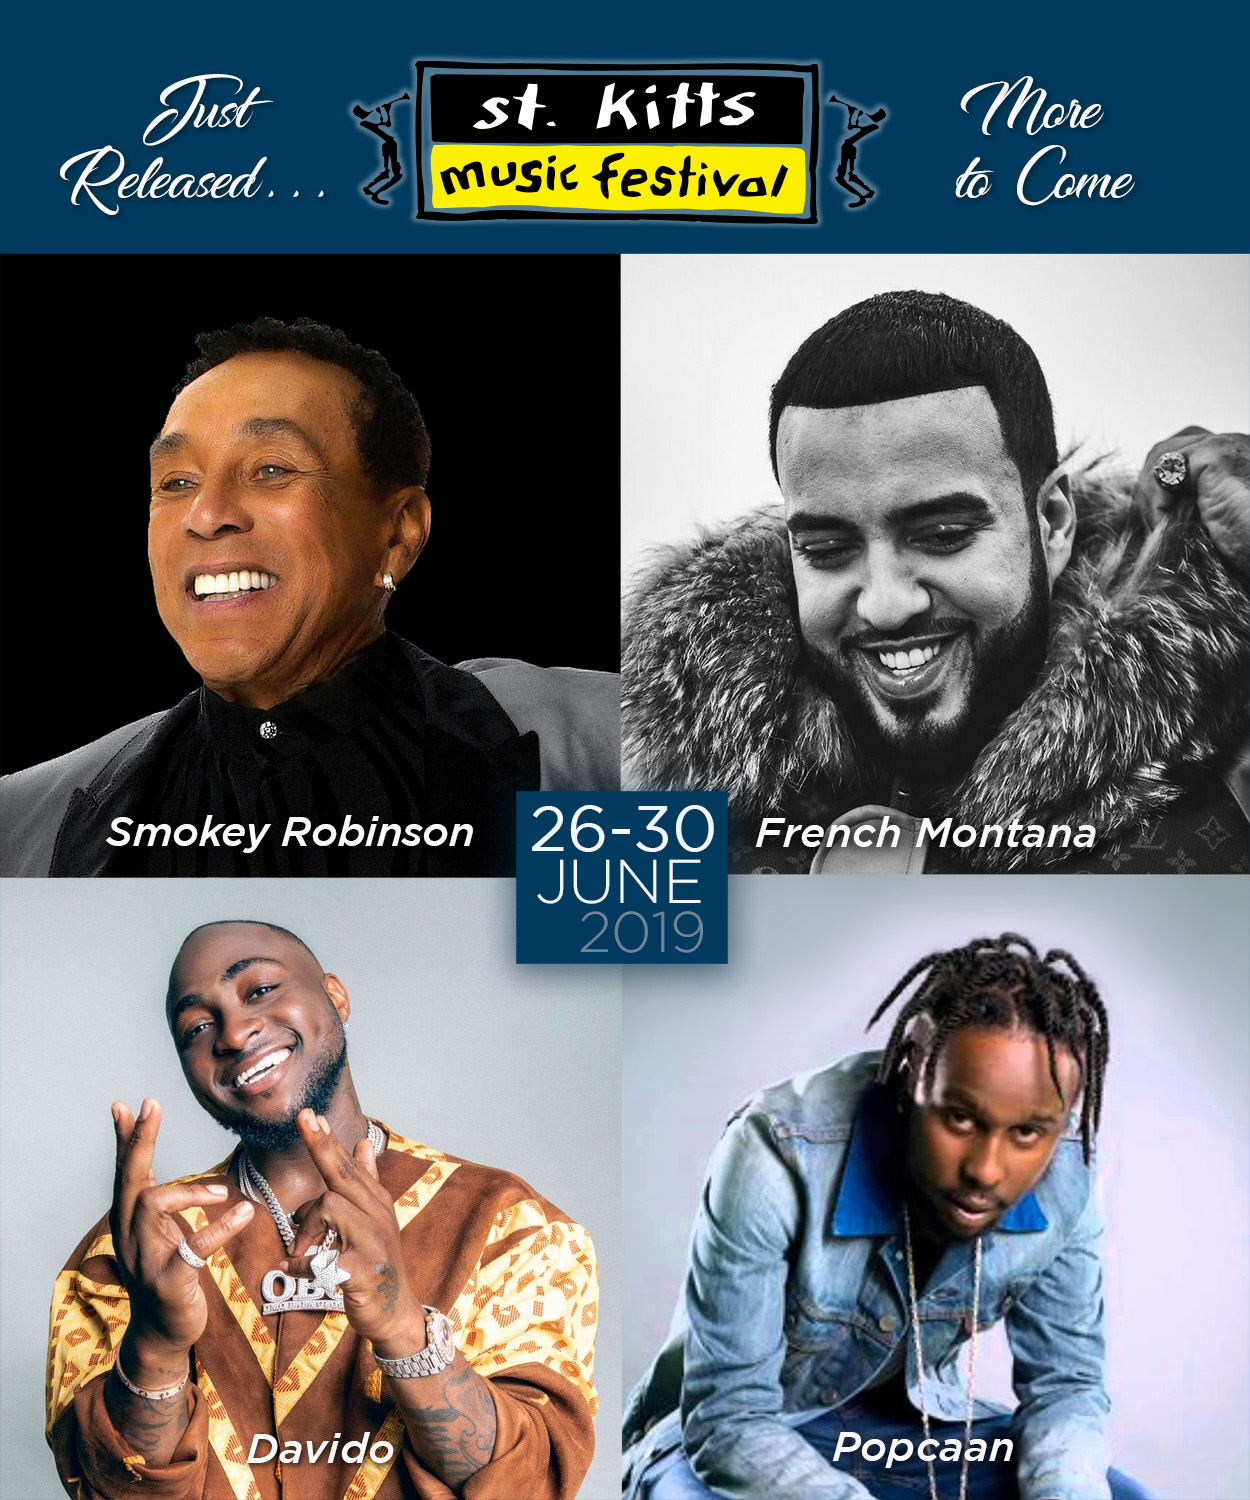 St. Kitts Music Festival artistes for 2019